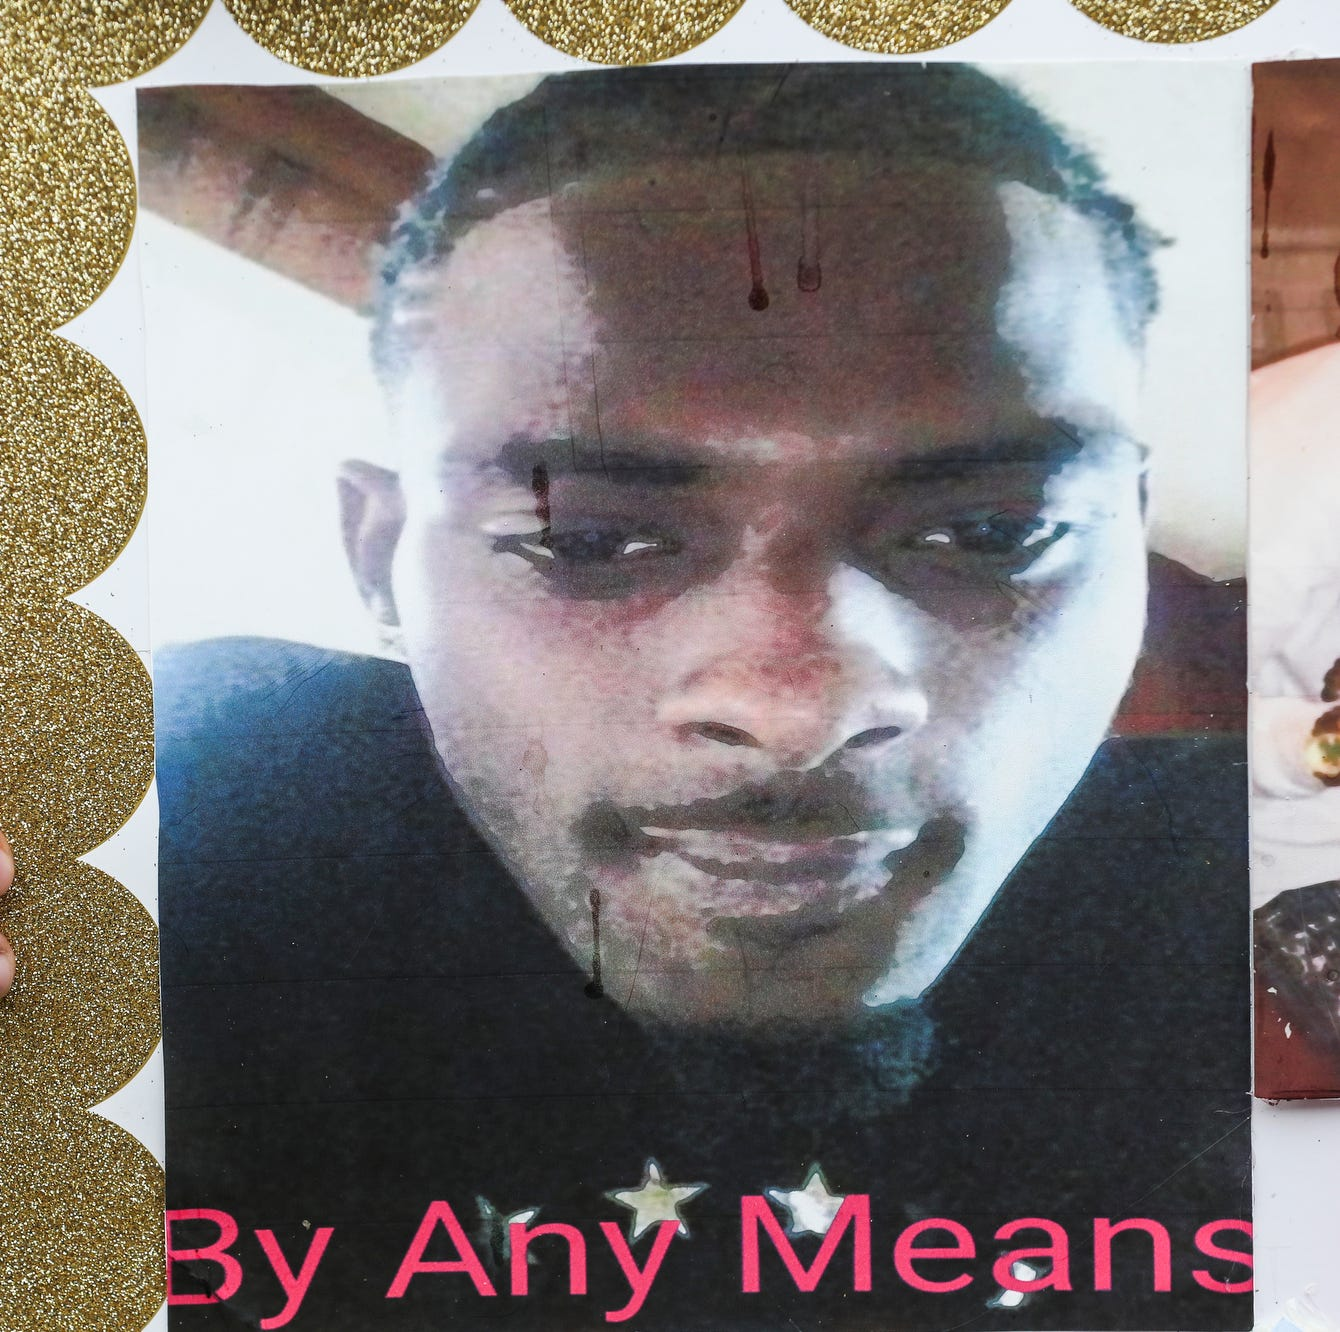 Martavious Banks indicted on several charges after being shot by MPD officer in 2018